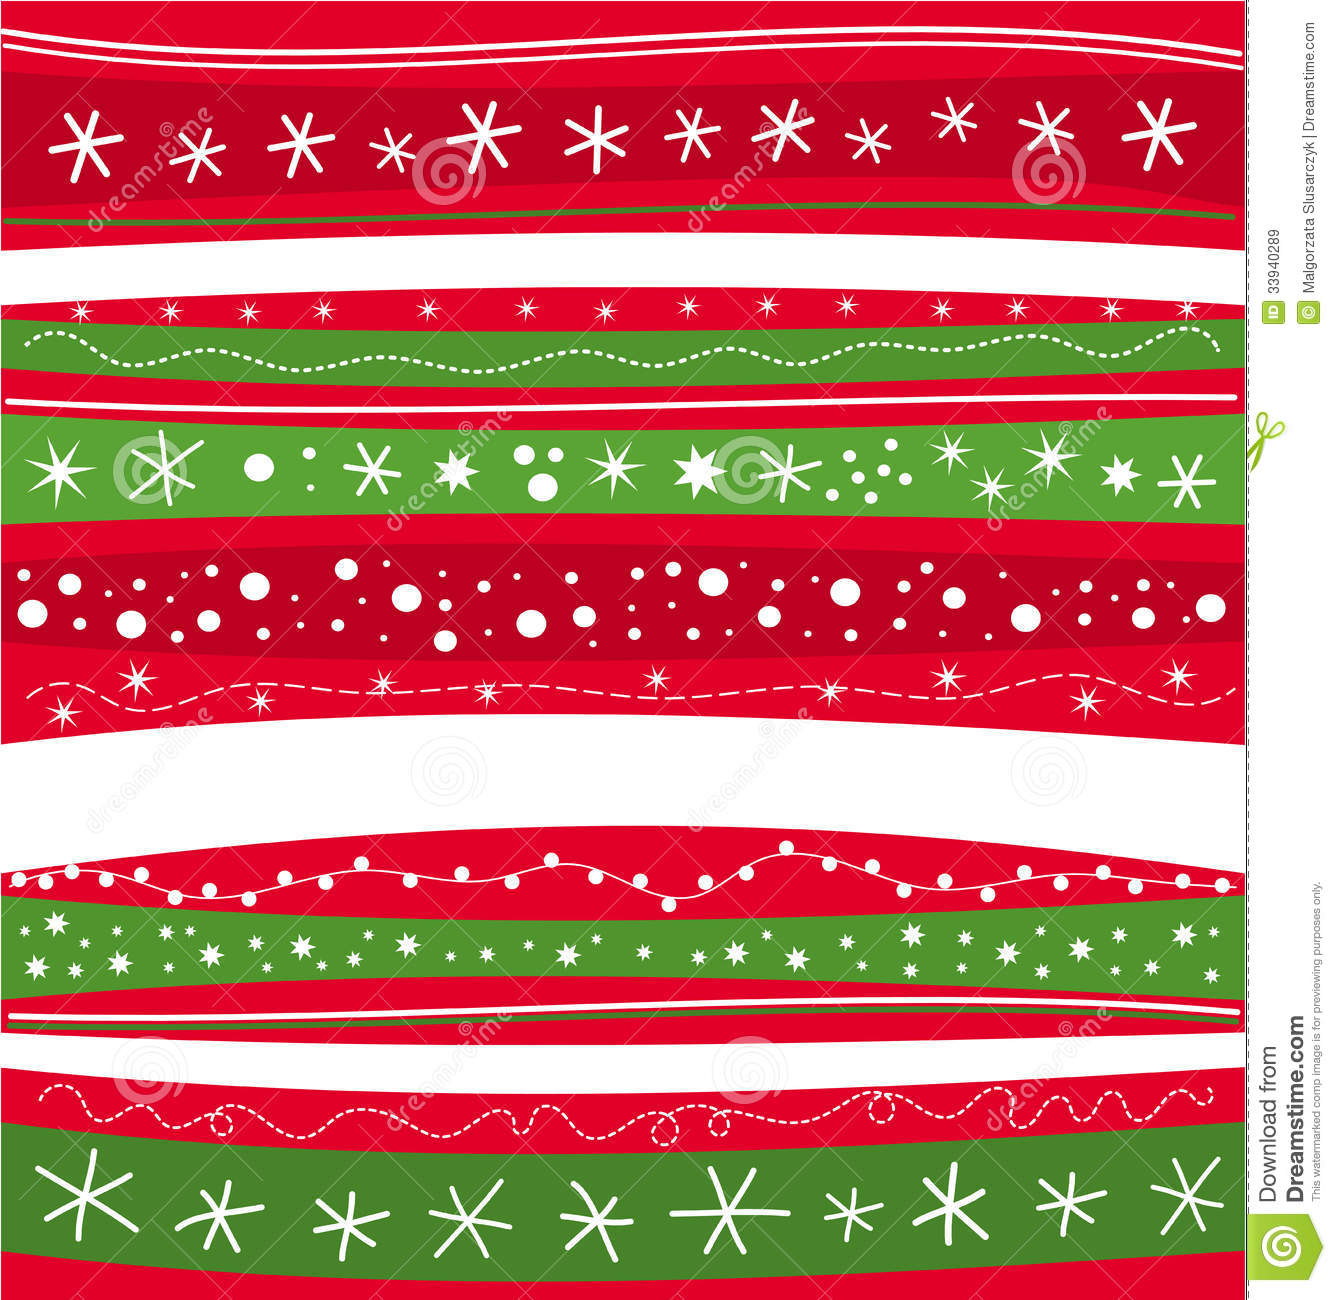 Christmas Wallpaper Royalty Free Stock Images - Image: 33940289